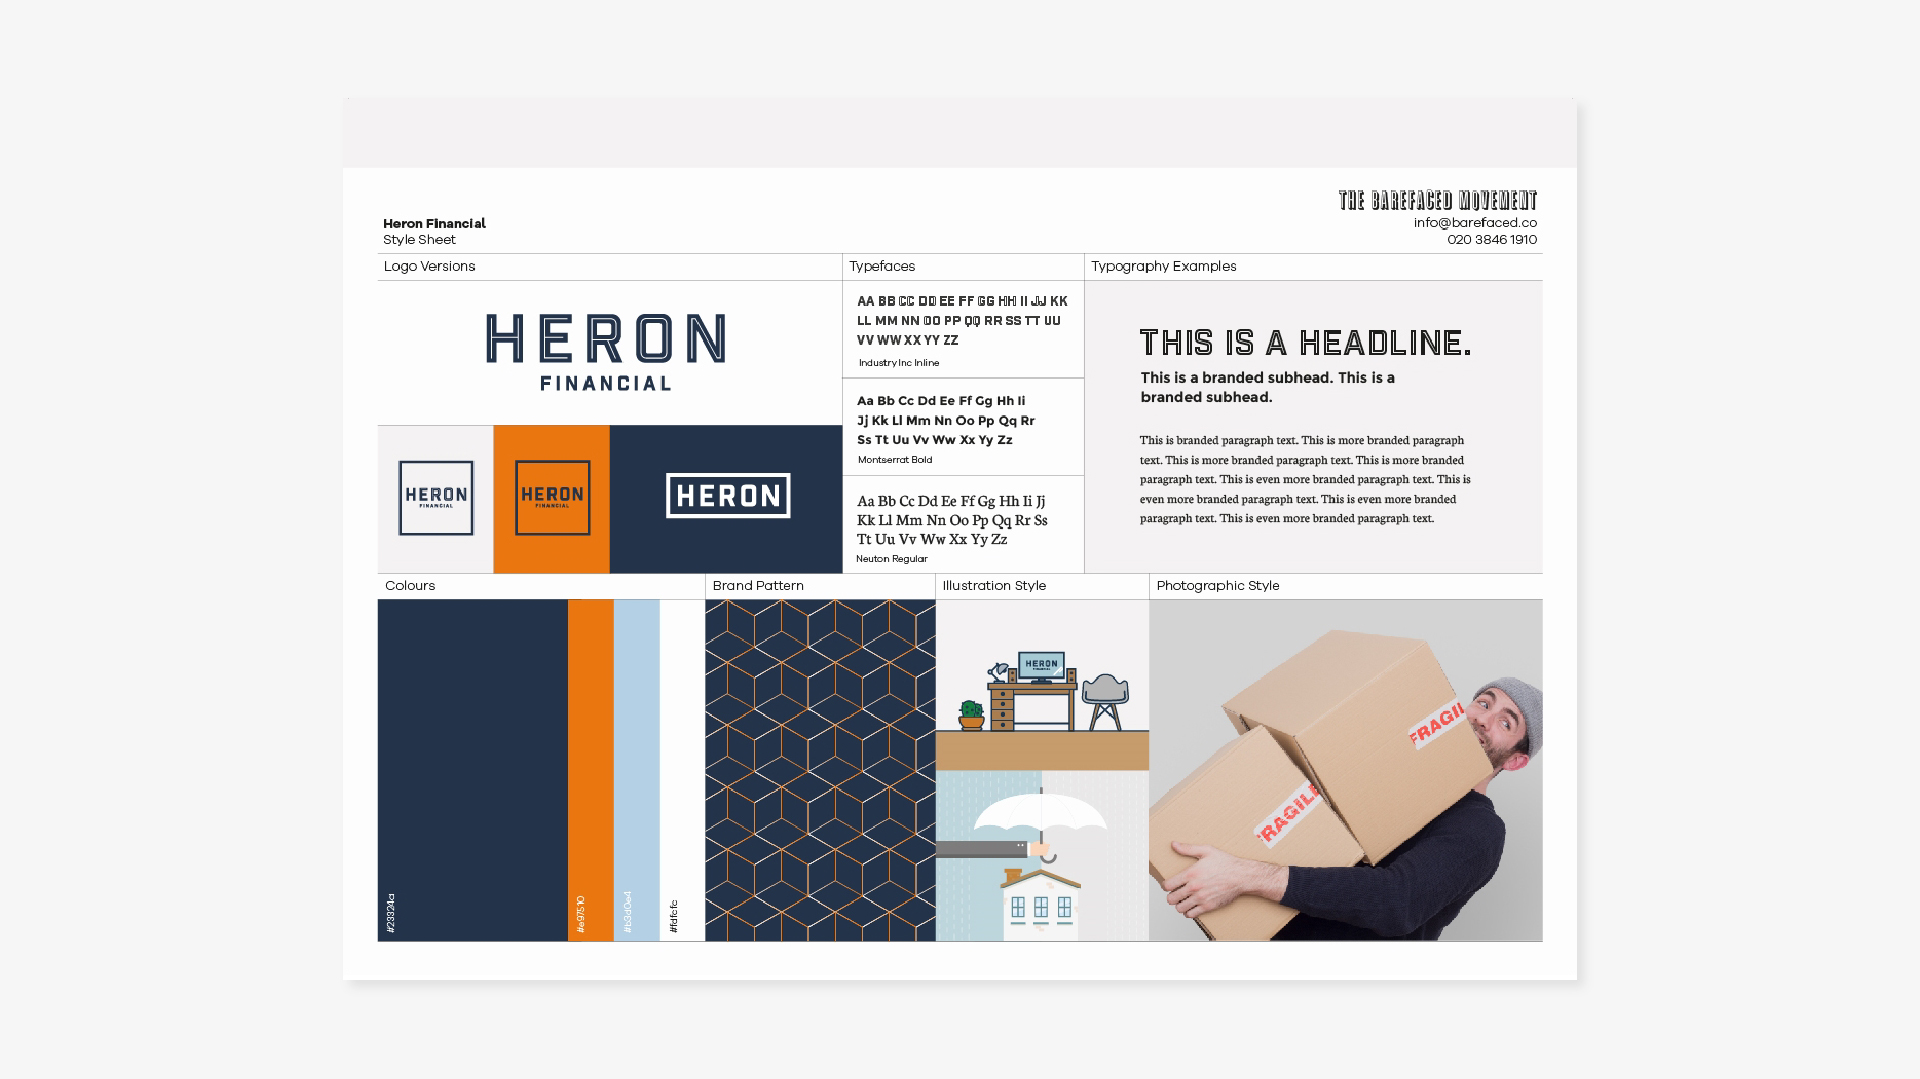 Brand Identity for Heron Financial, mortgage and insurance brokers. Graphic design by Barefaced Studios, design agency based in Islington, North London.